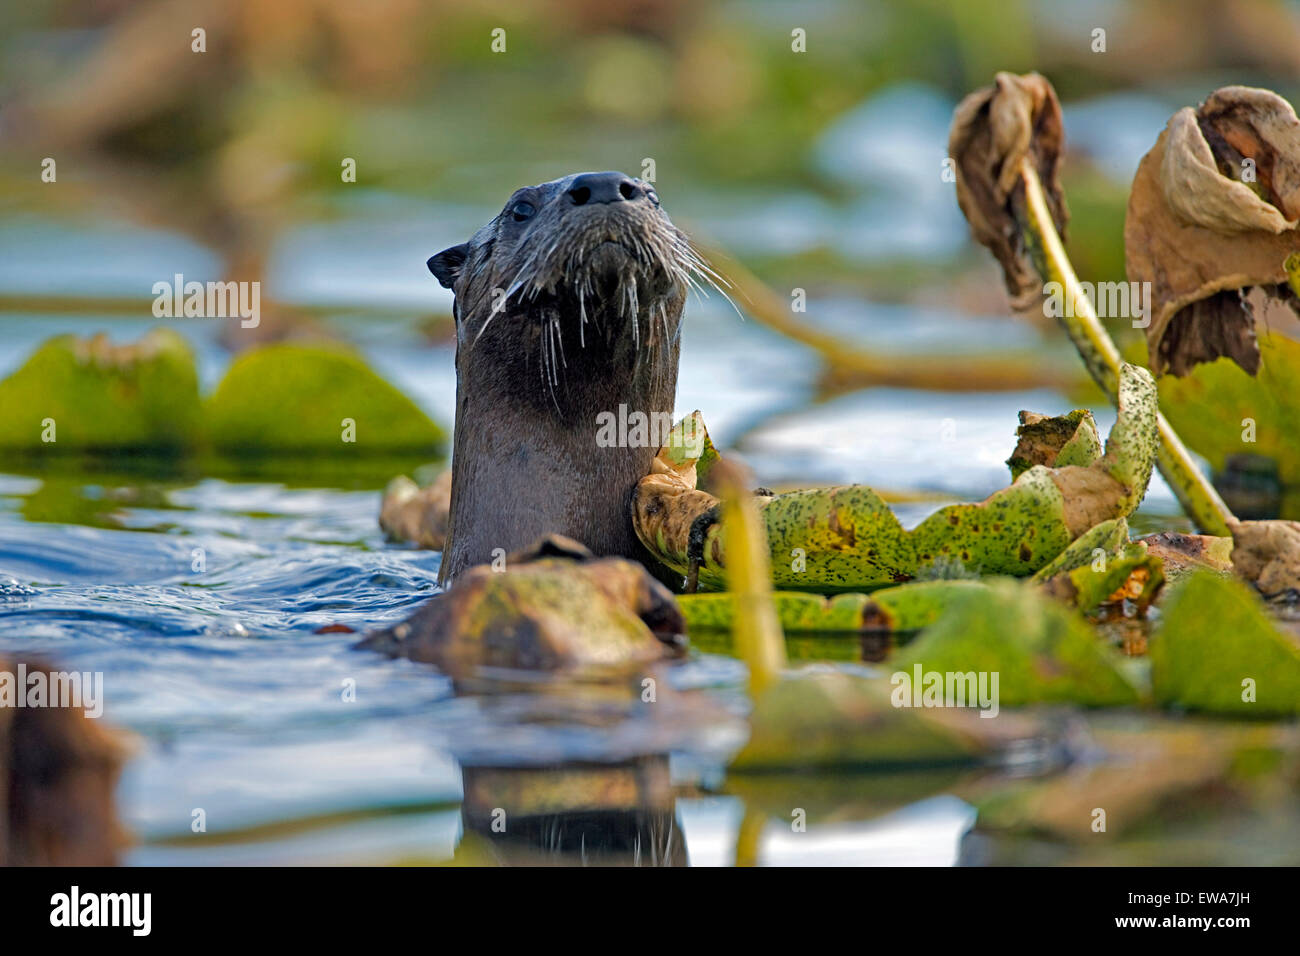 River Otter swimming among water lilies, watching,alert (Lutra canadensis ) - Stock Image